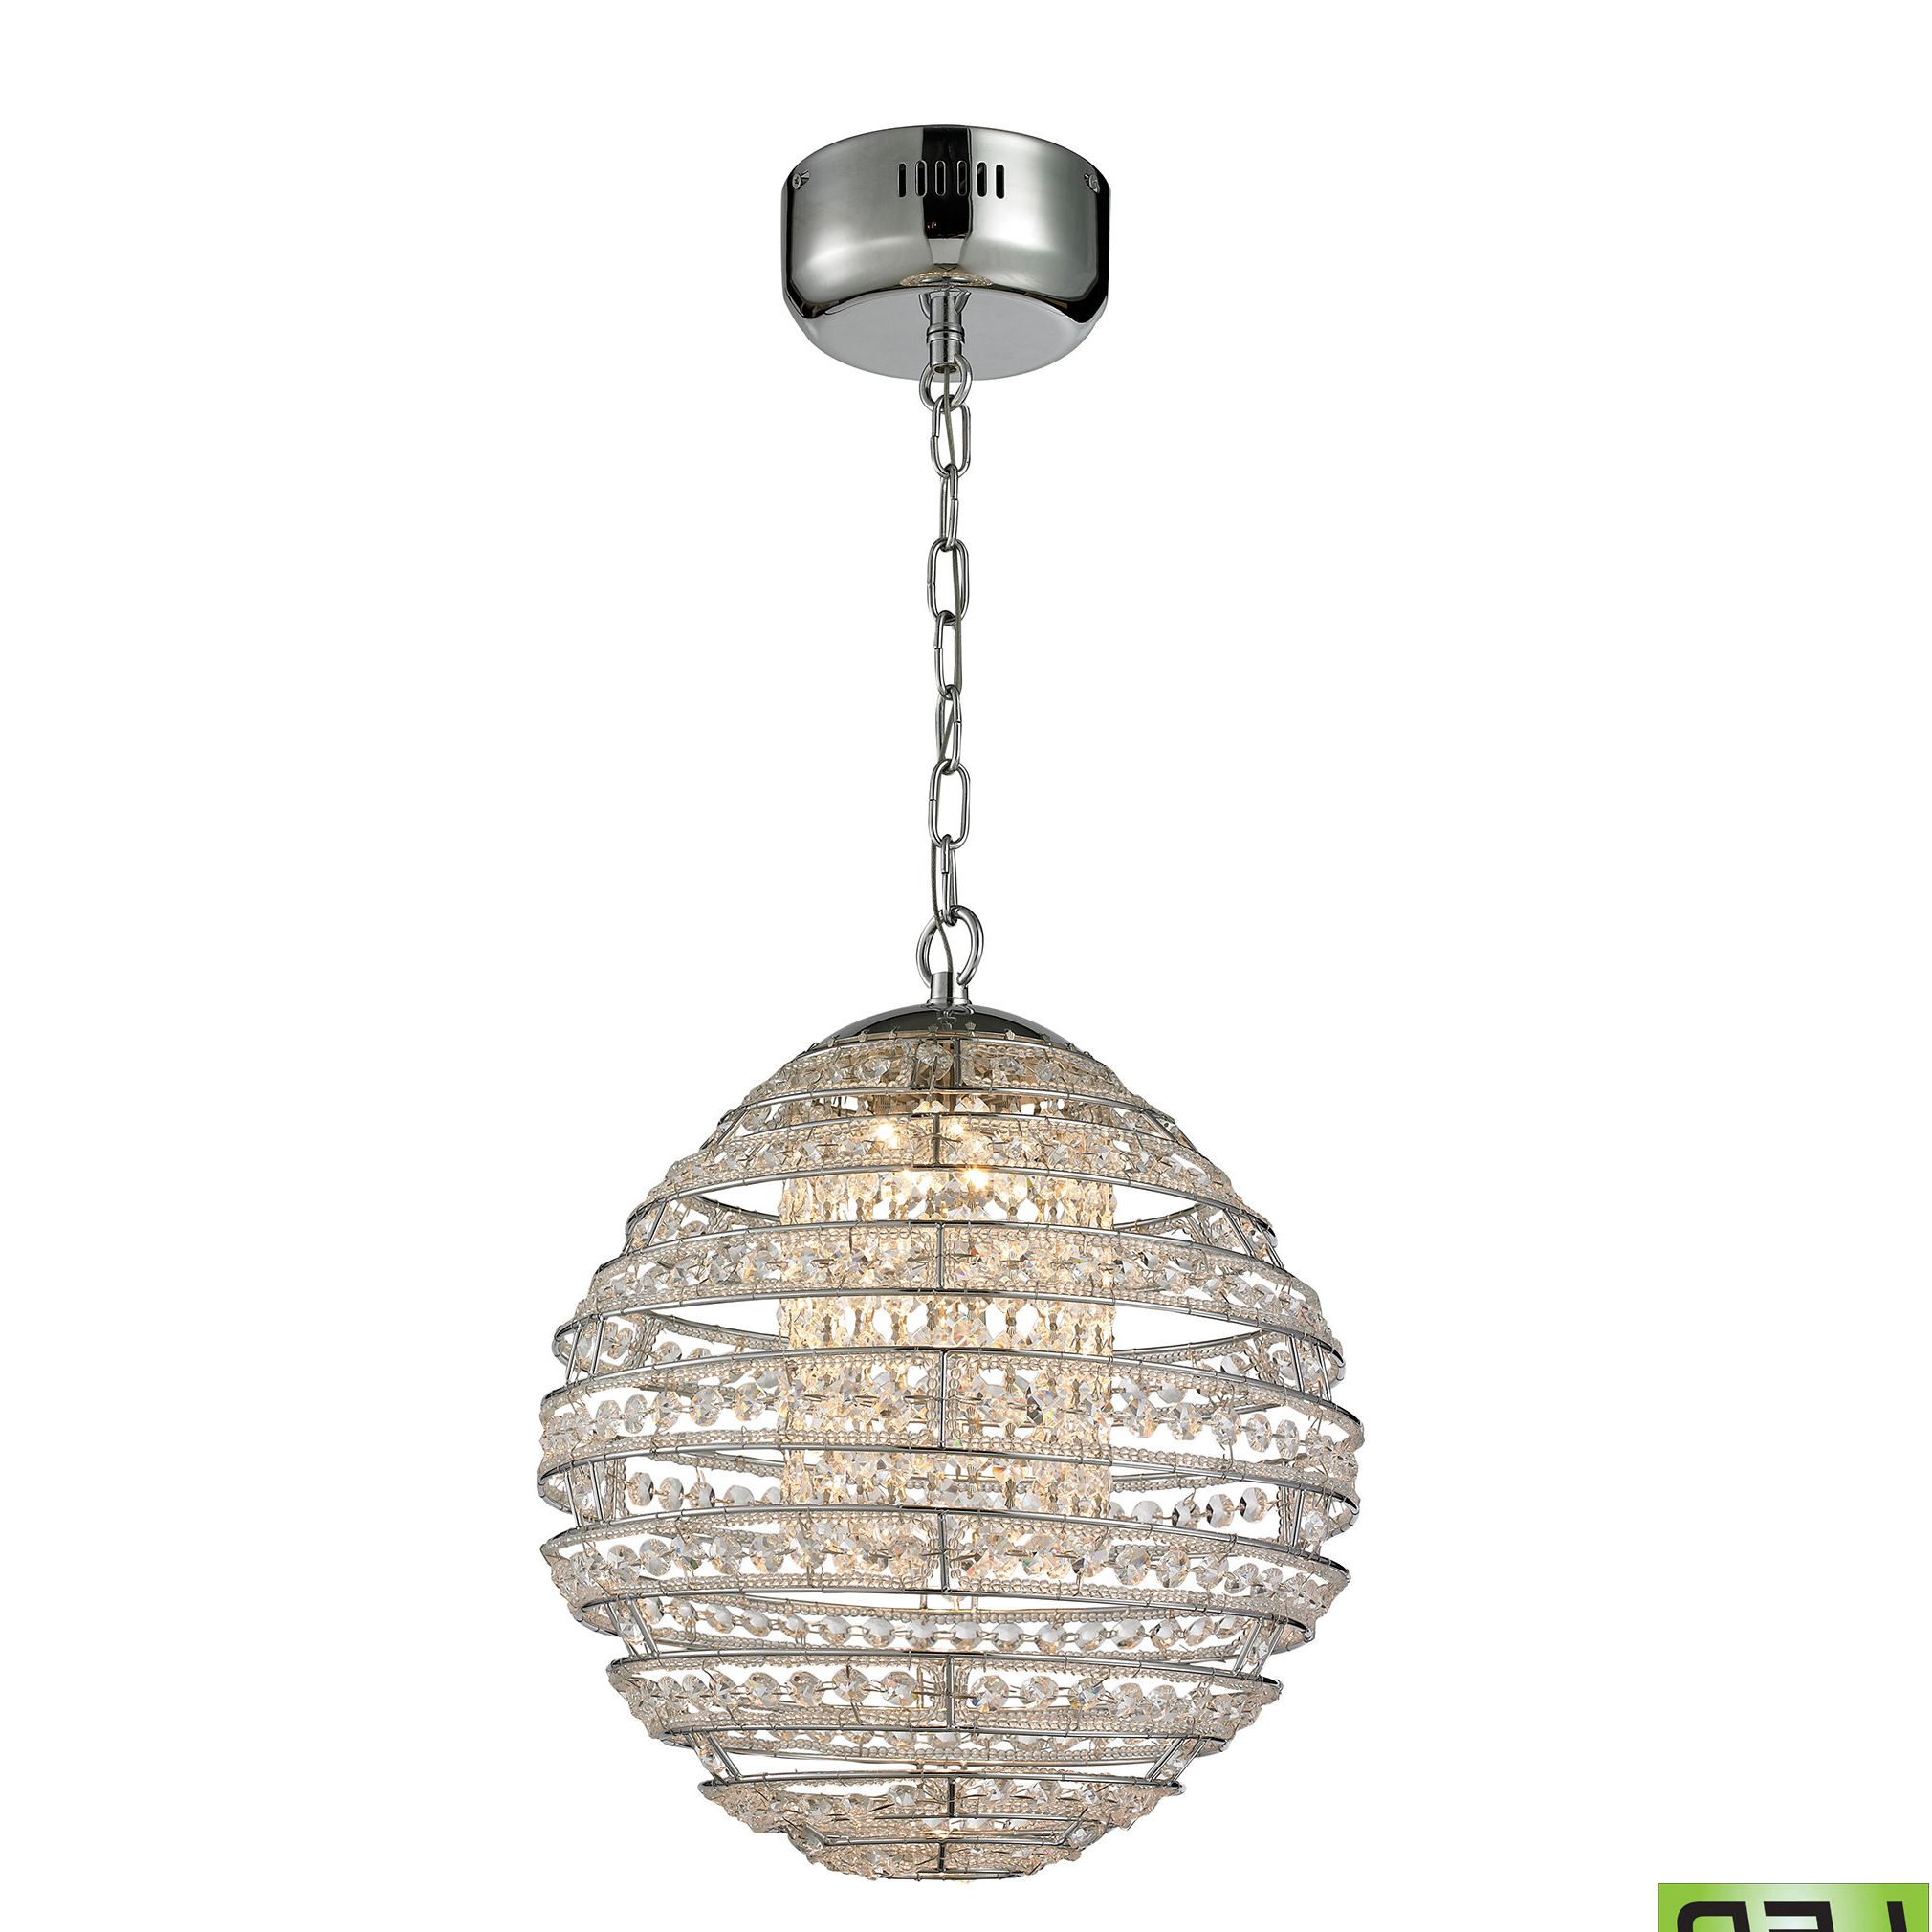 Best and Newest Tussey 1-Light Led Single Globe Pendant with regard to Dilley 1-Light Unique / Statement Geometric Pendants